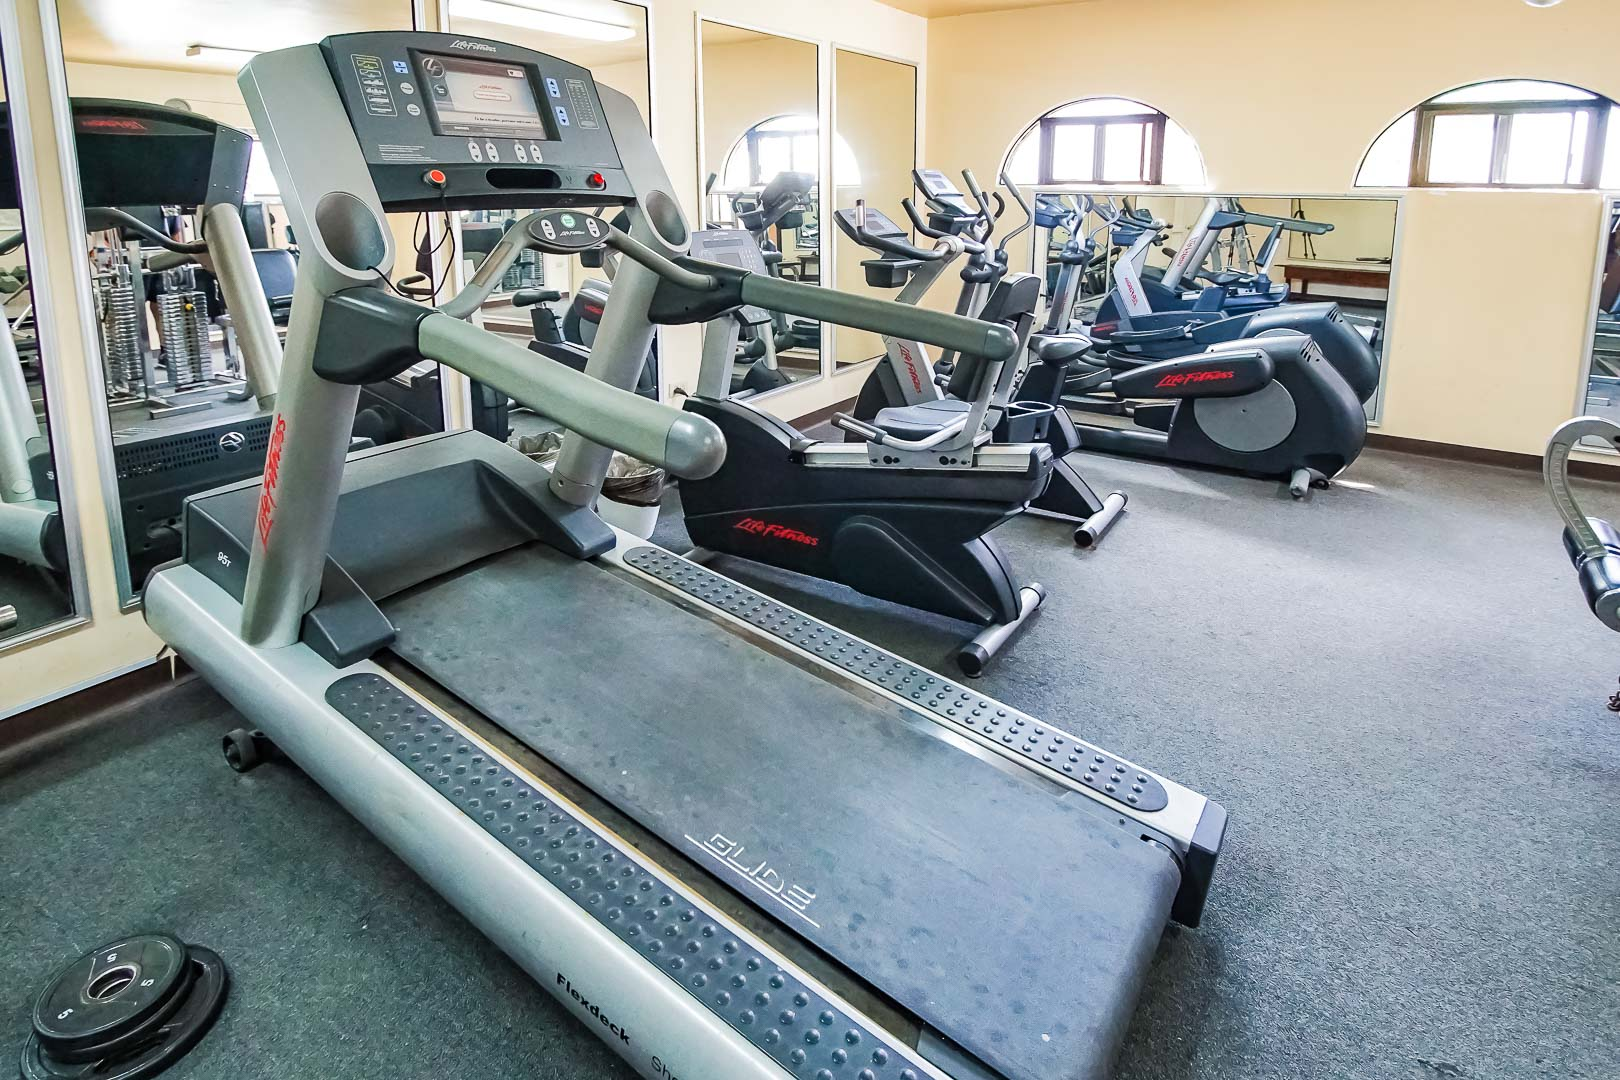 A fully equipped exercise room at VRI's La Paloma in Rosarito, Mexico.